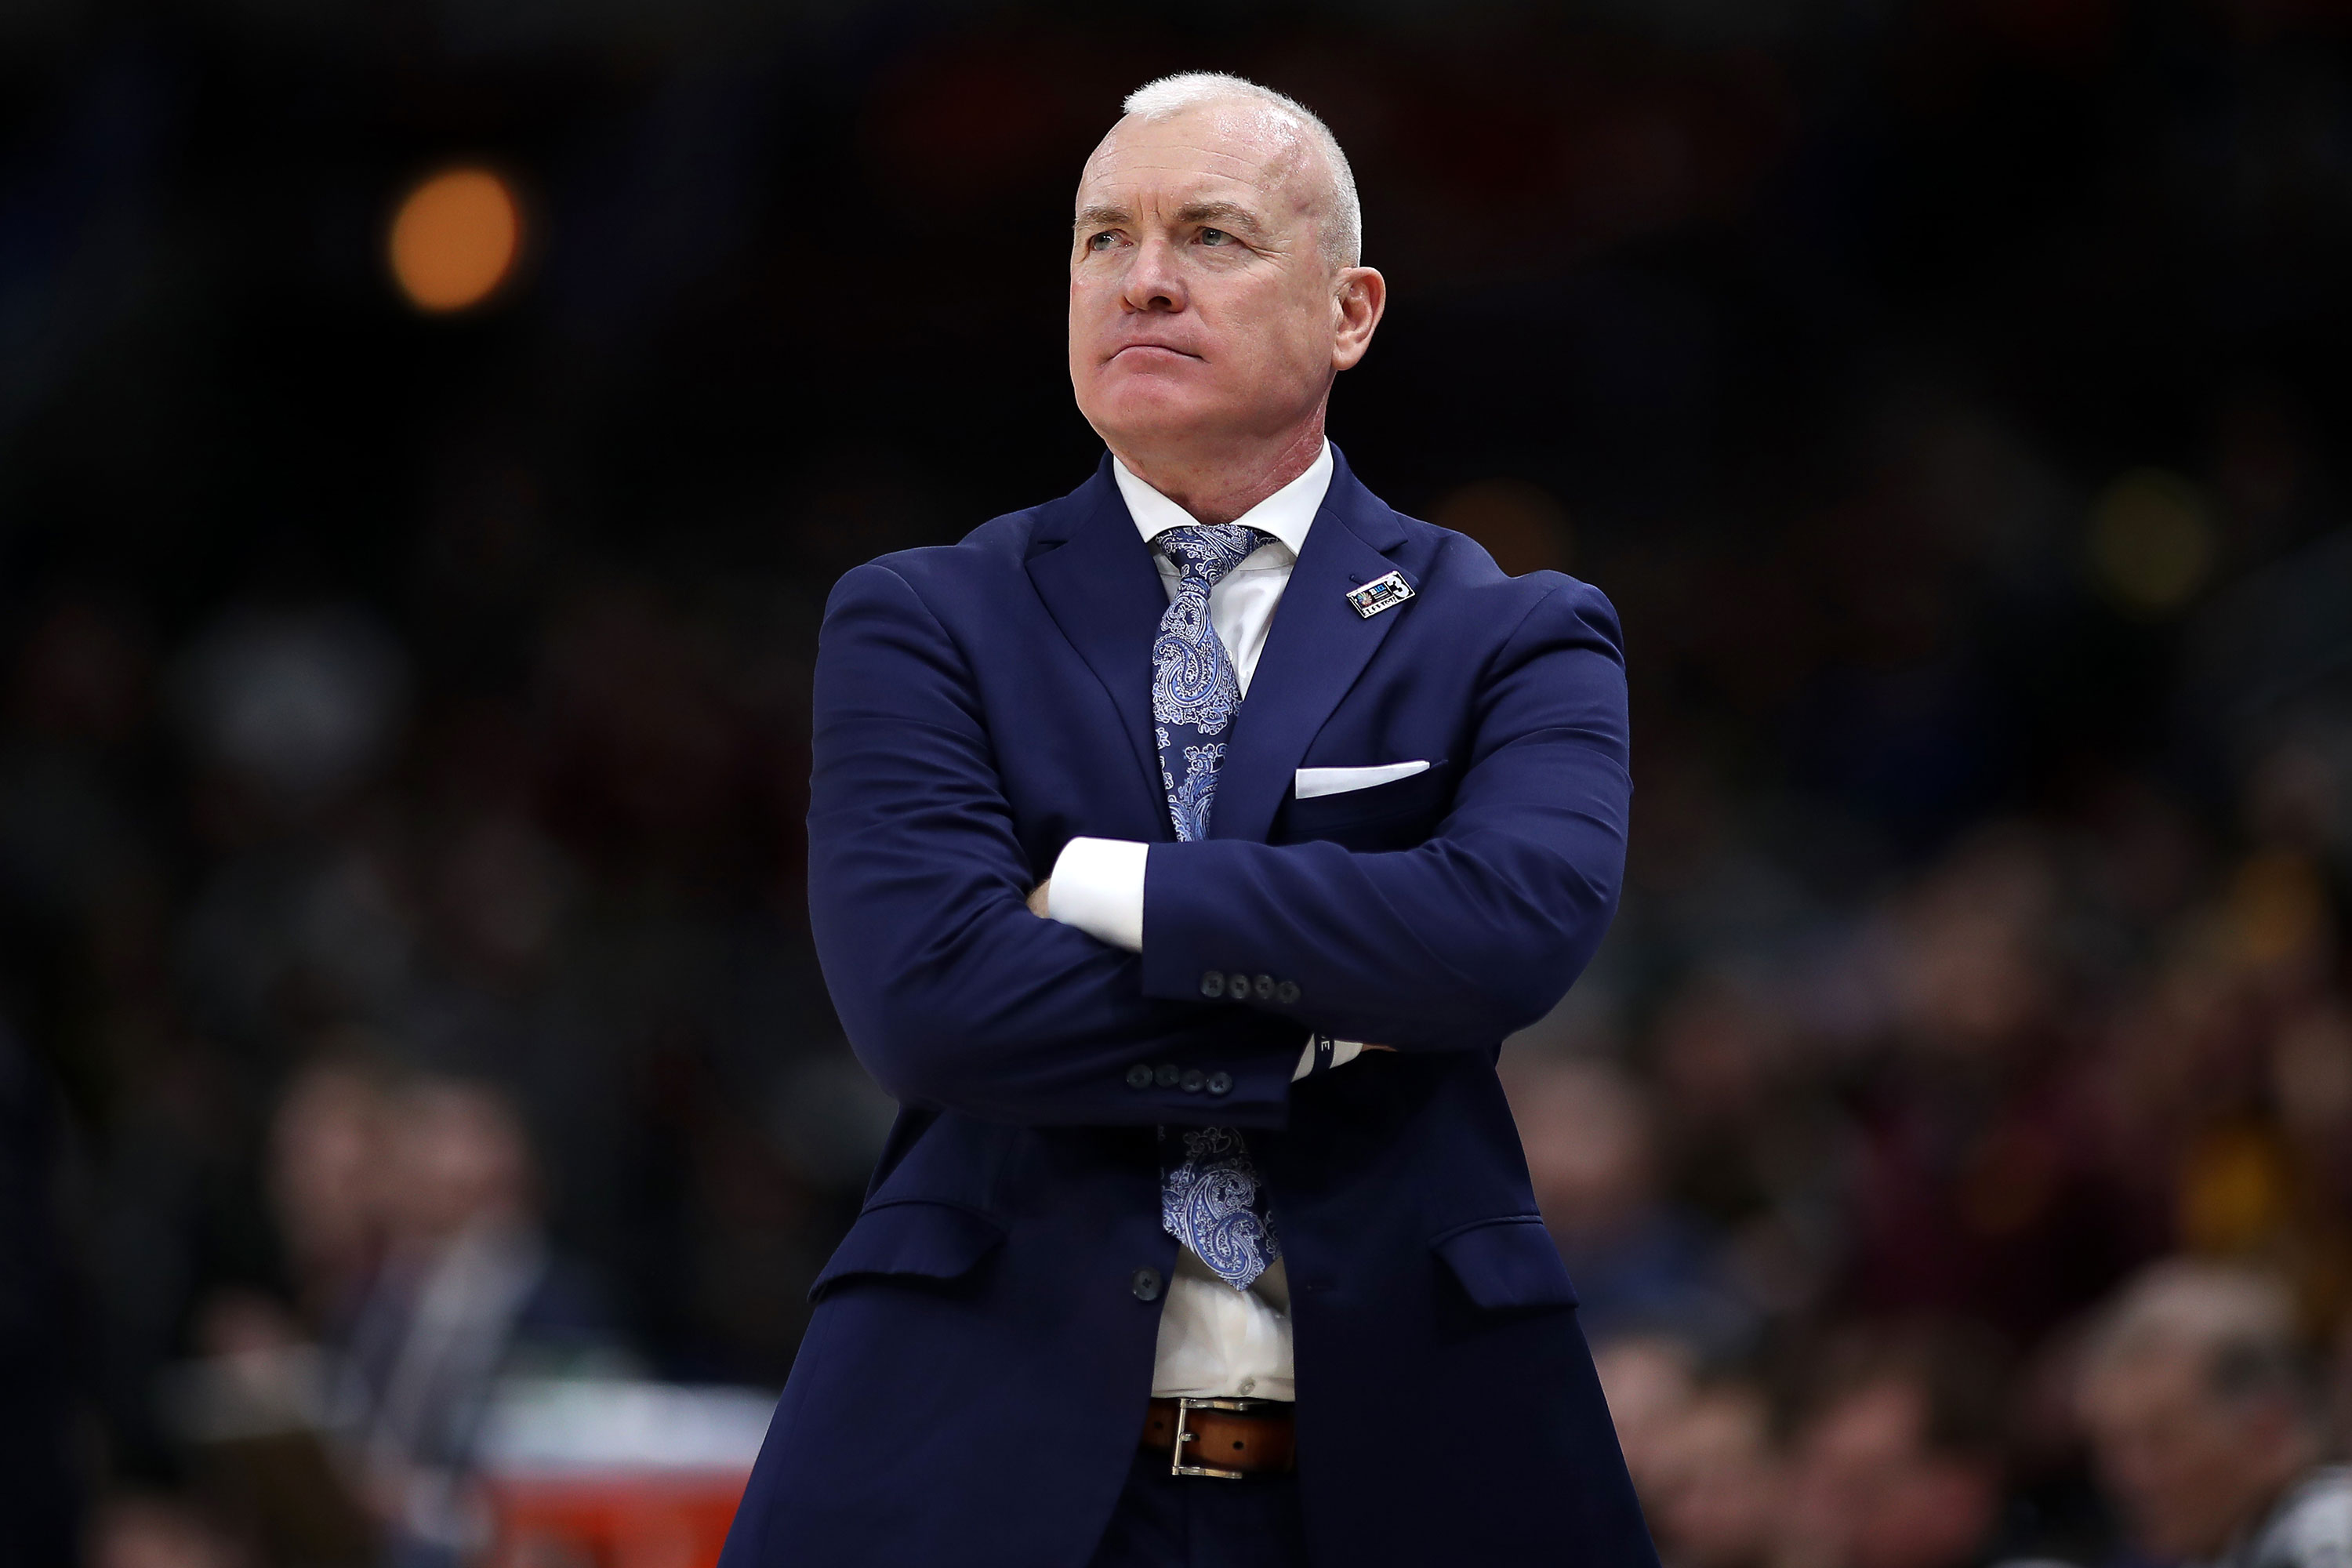 A remark about a noose around a player's neck led to Penn State basketball coach's resignation